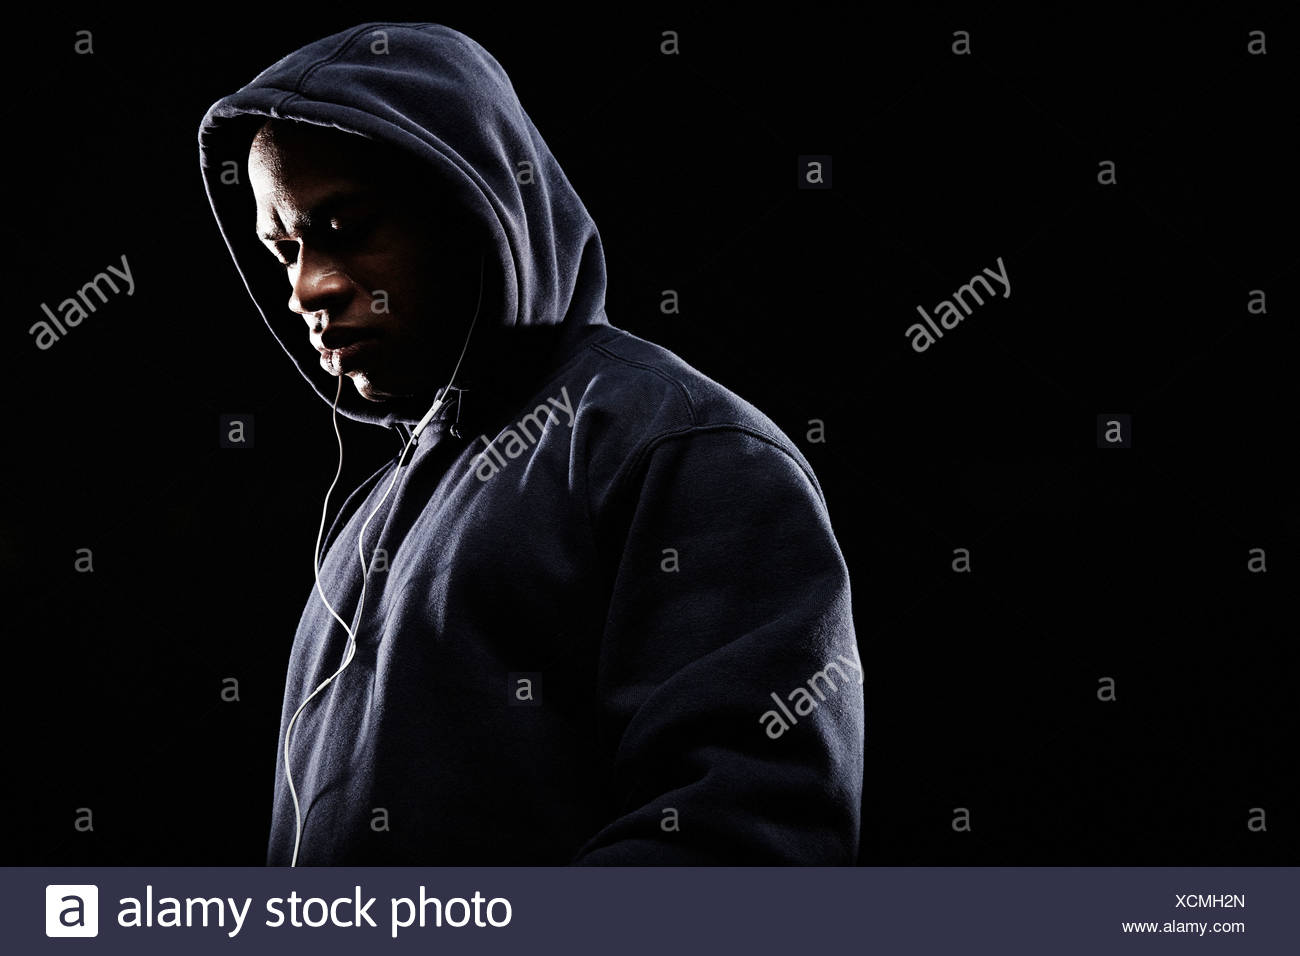 Mid adult man wearing hooded top - Stock Image